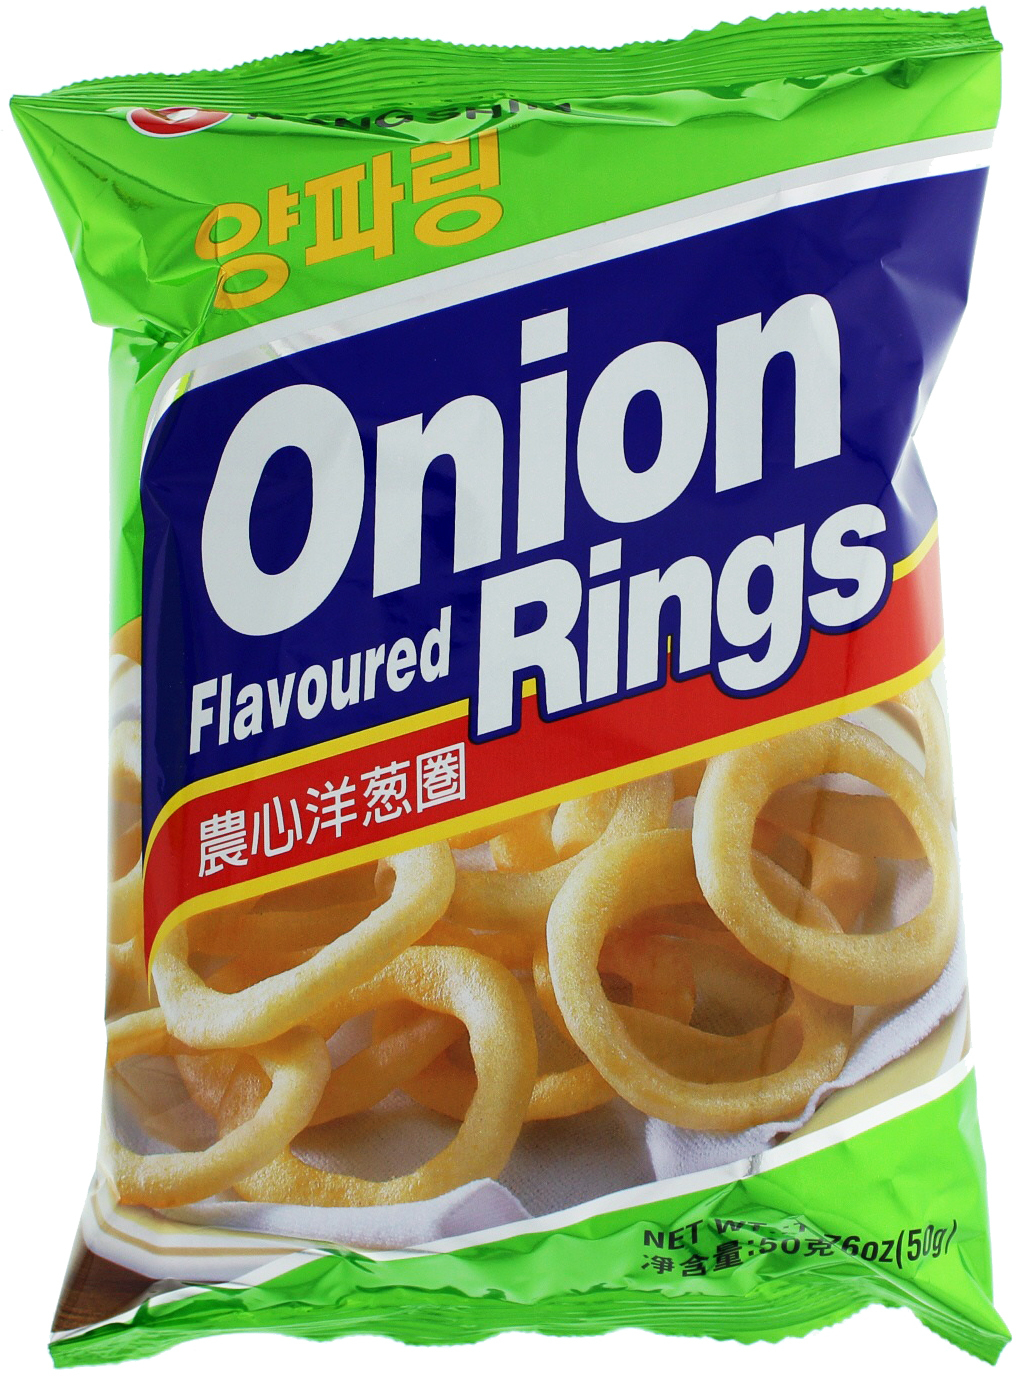 Nong Shim Onion Flavoured Rings 50g - 12 pack image